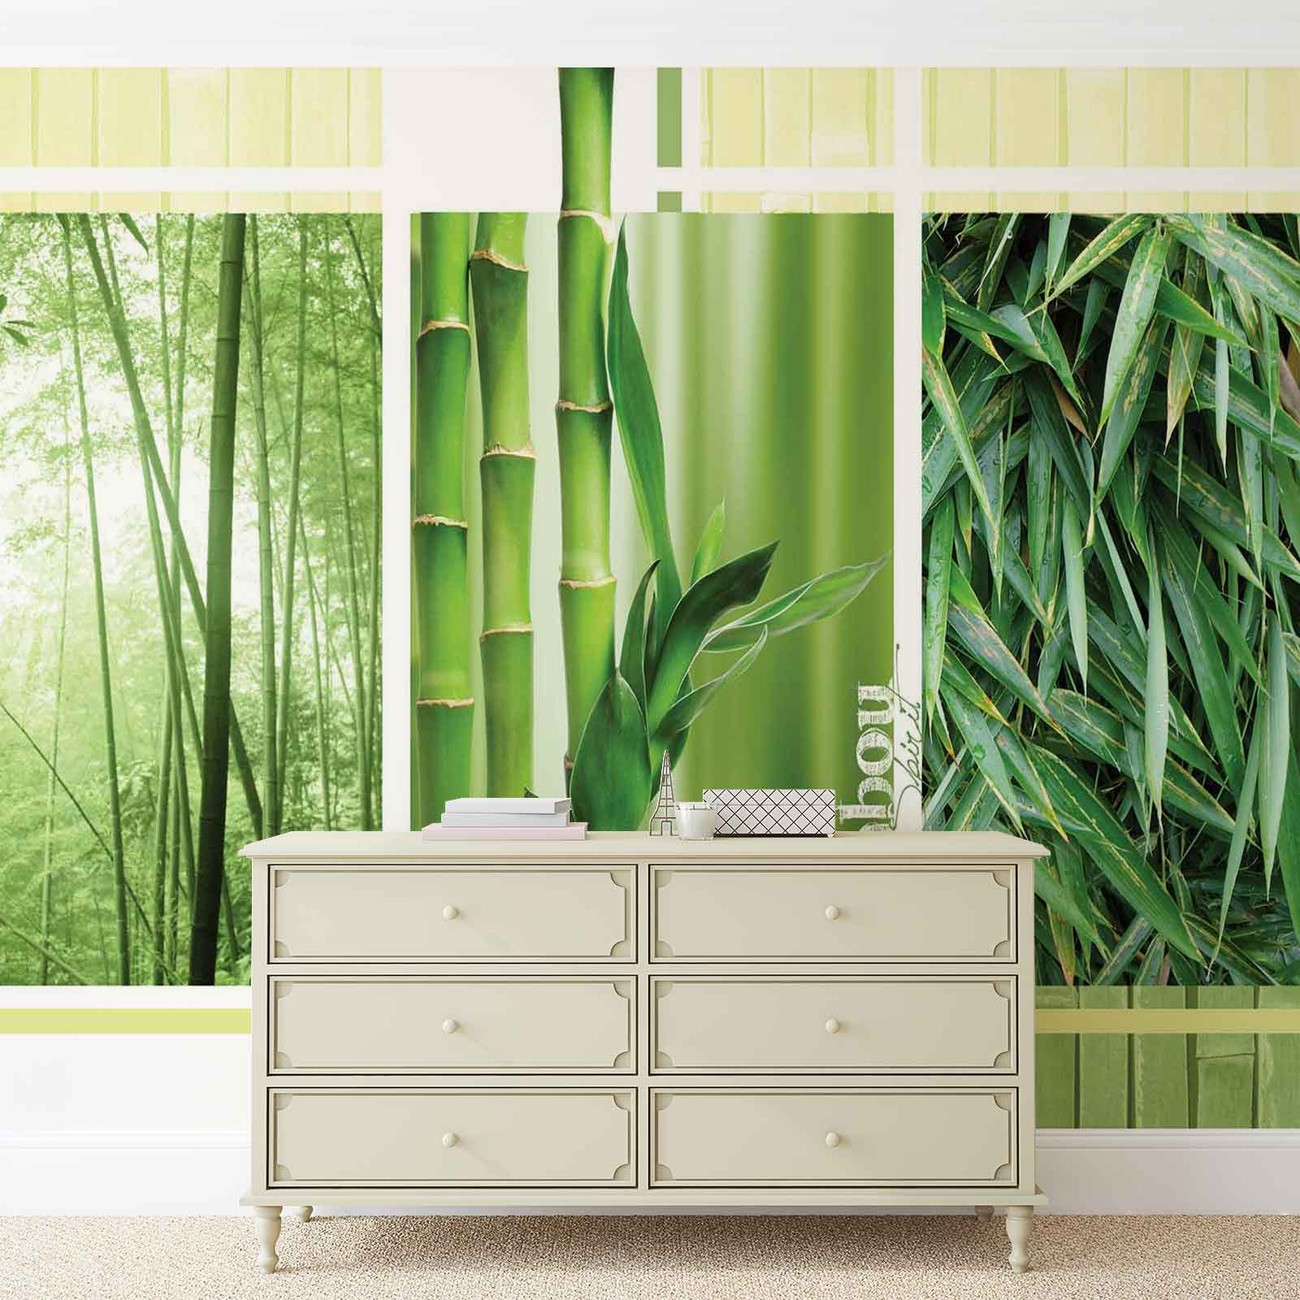 Bamboo forest nature wall paper mural buy at for Bamboo forest wall mural